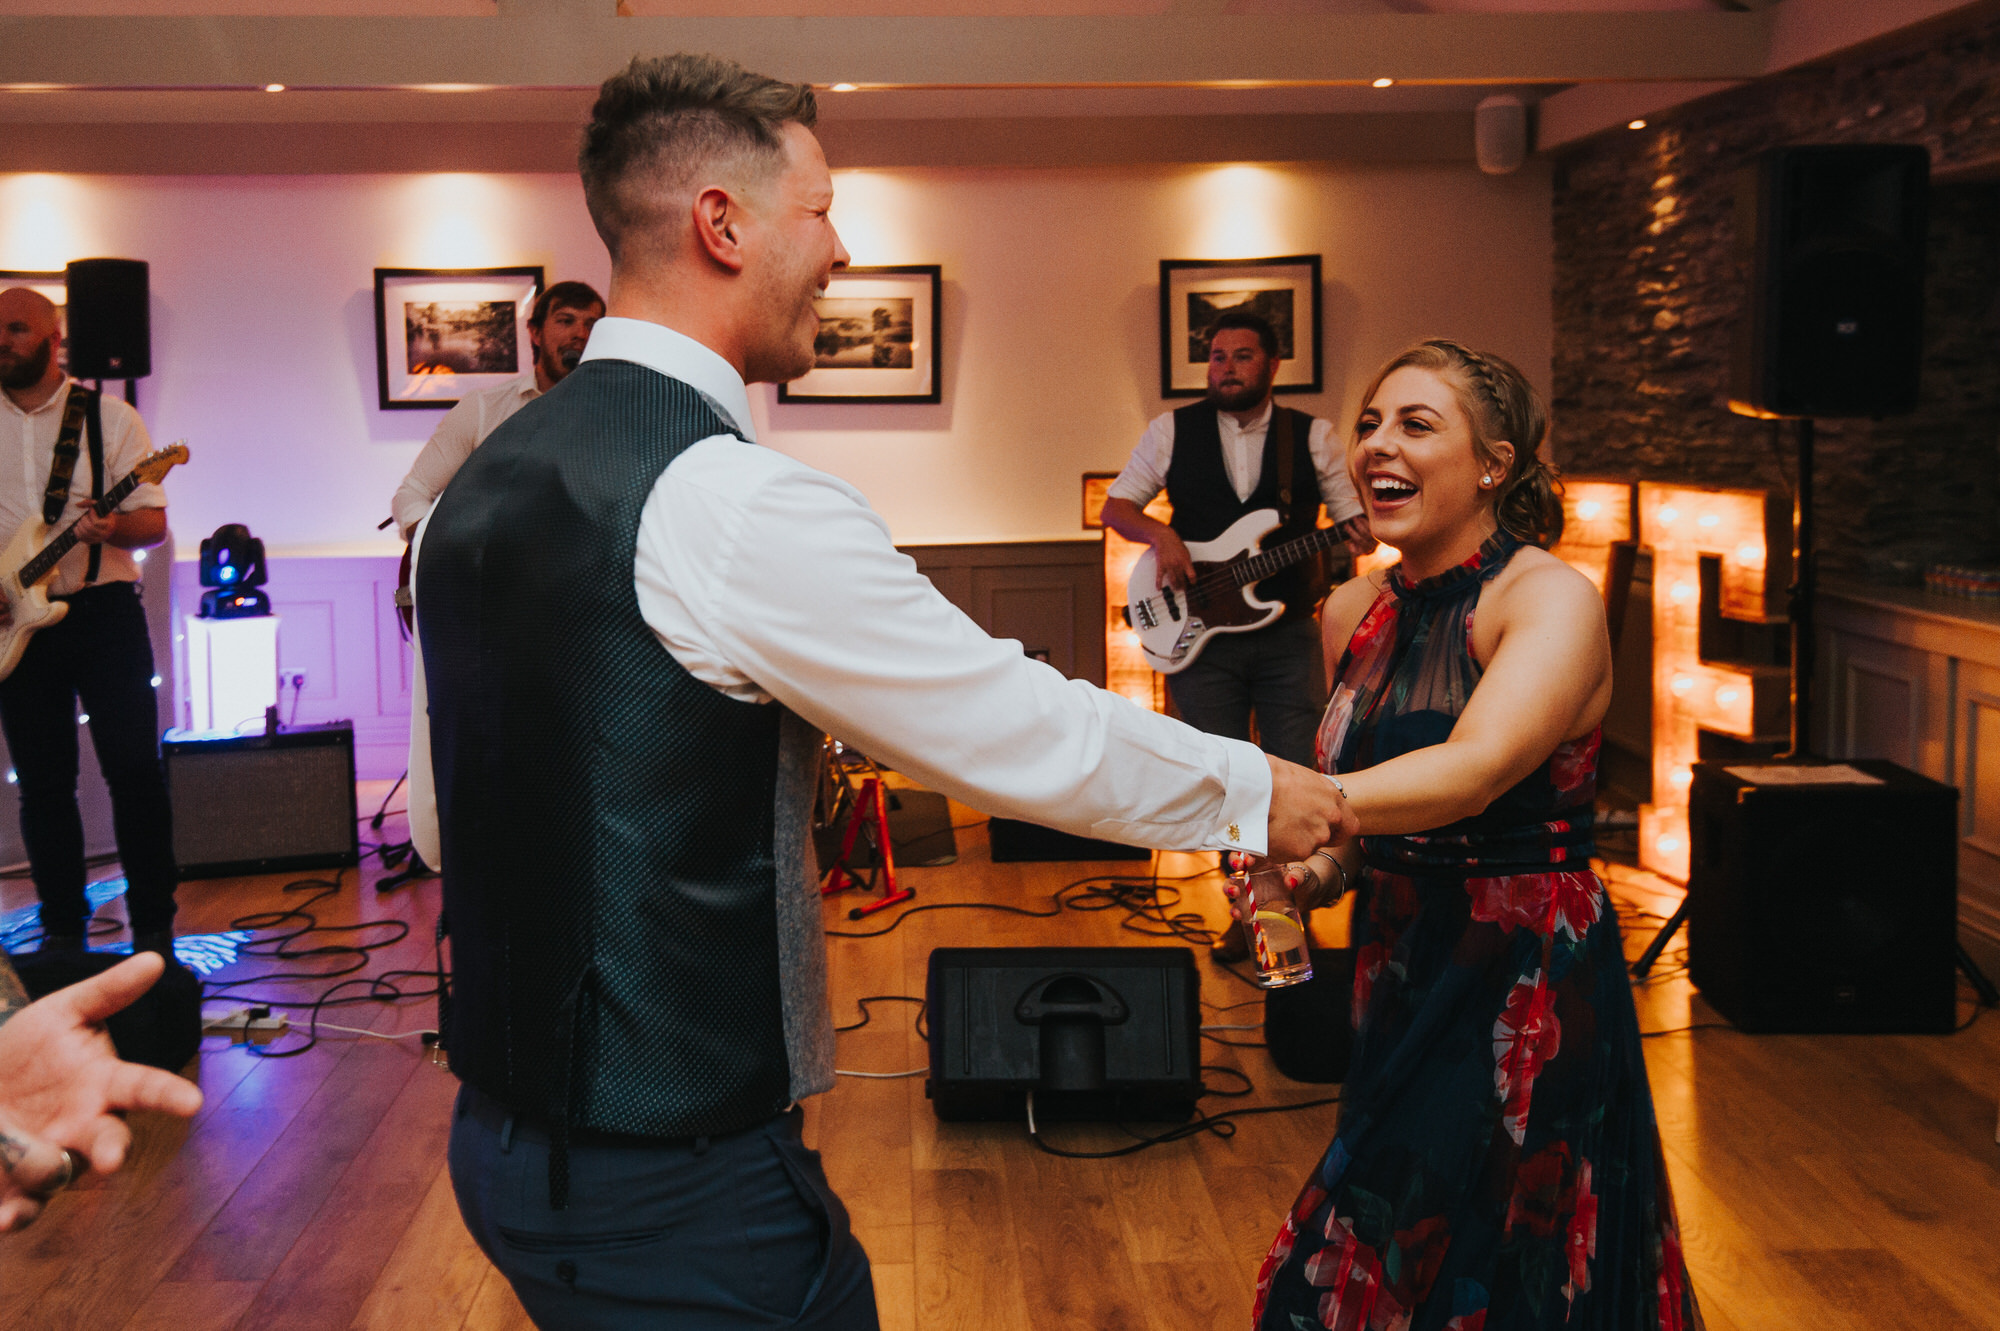 Emlyn hotel wales wedding photographer 15